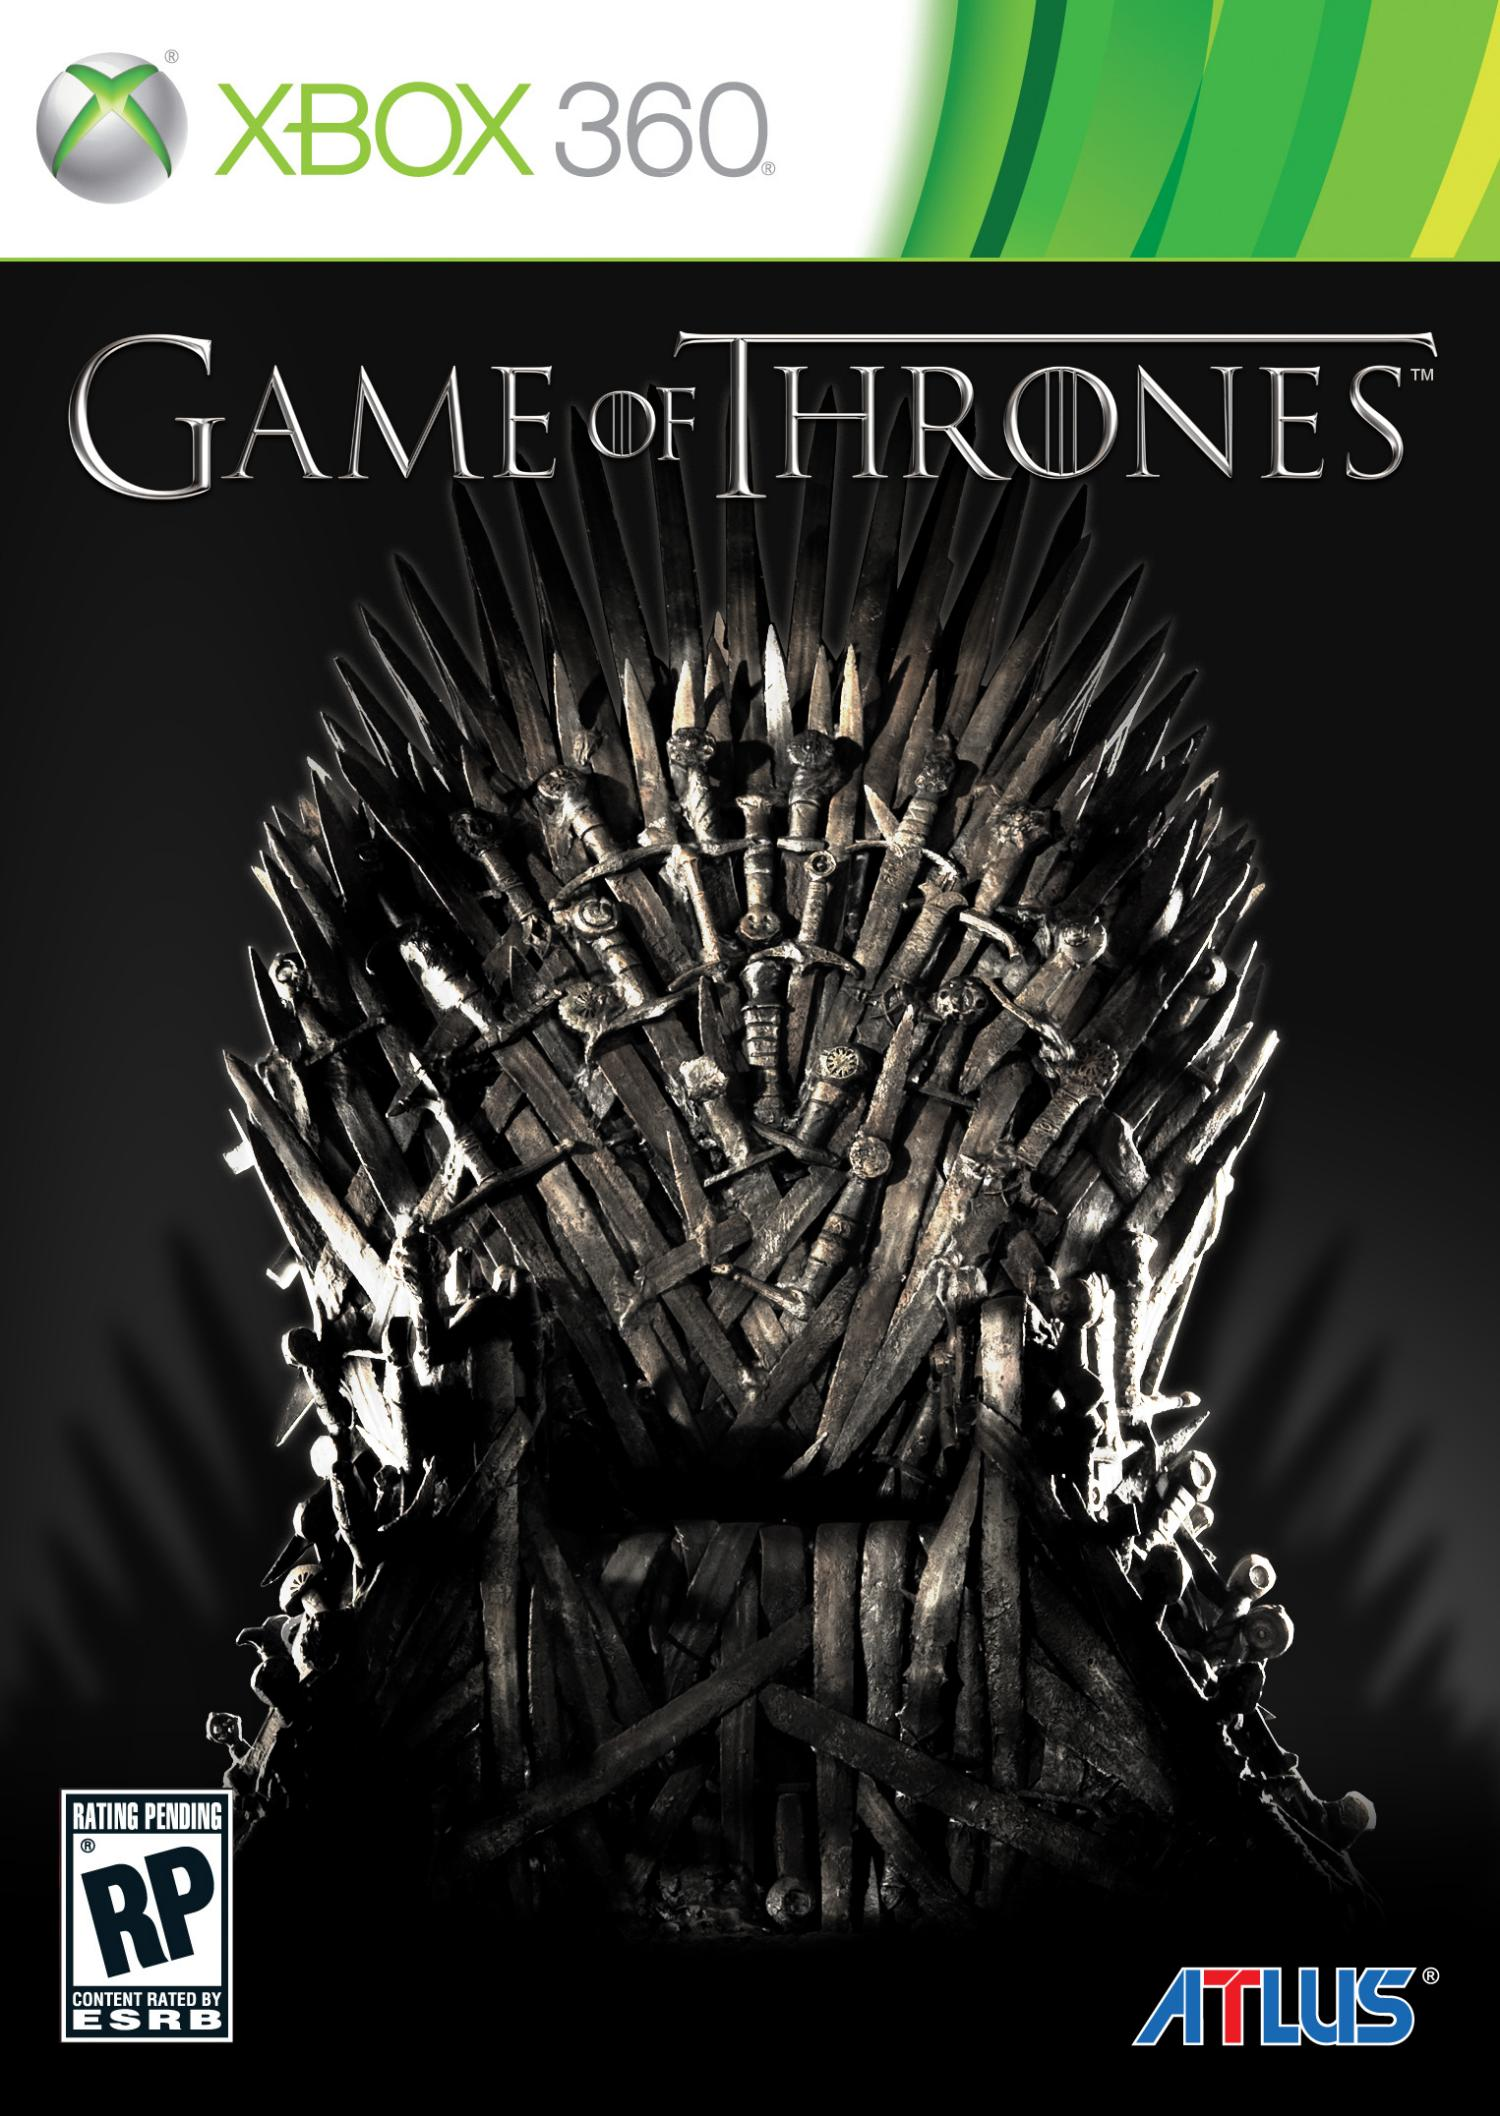 Game of Thrones (2012 video game) - A Wiki of Ice and Fire